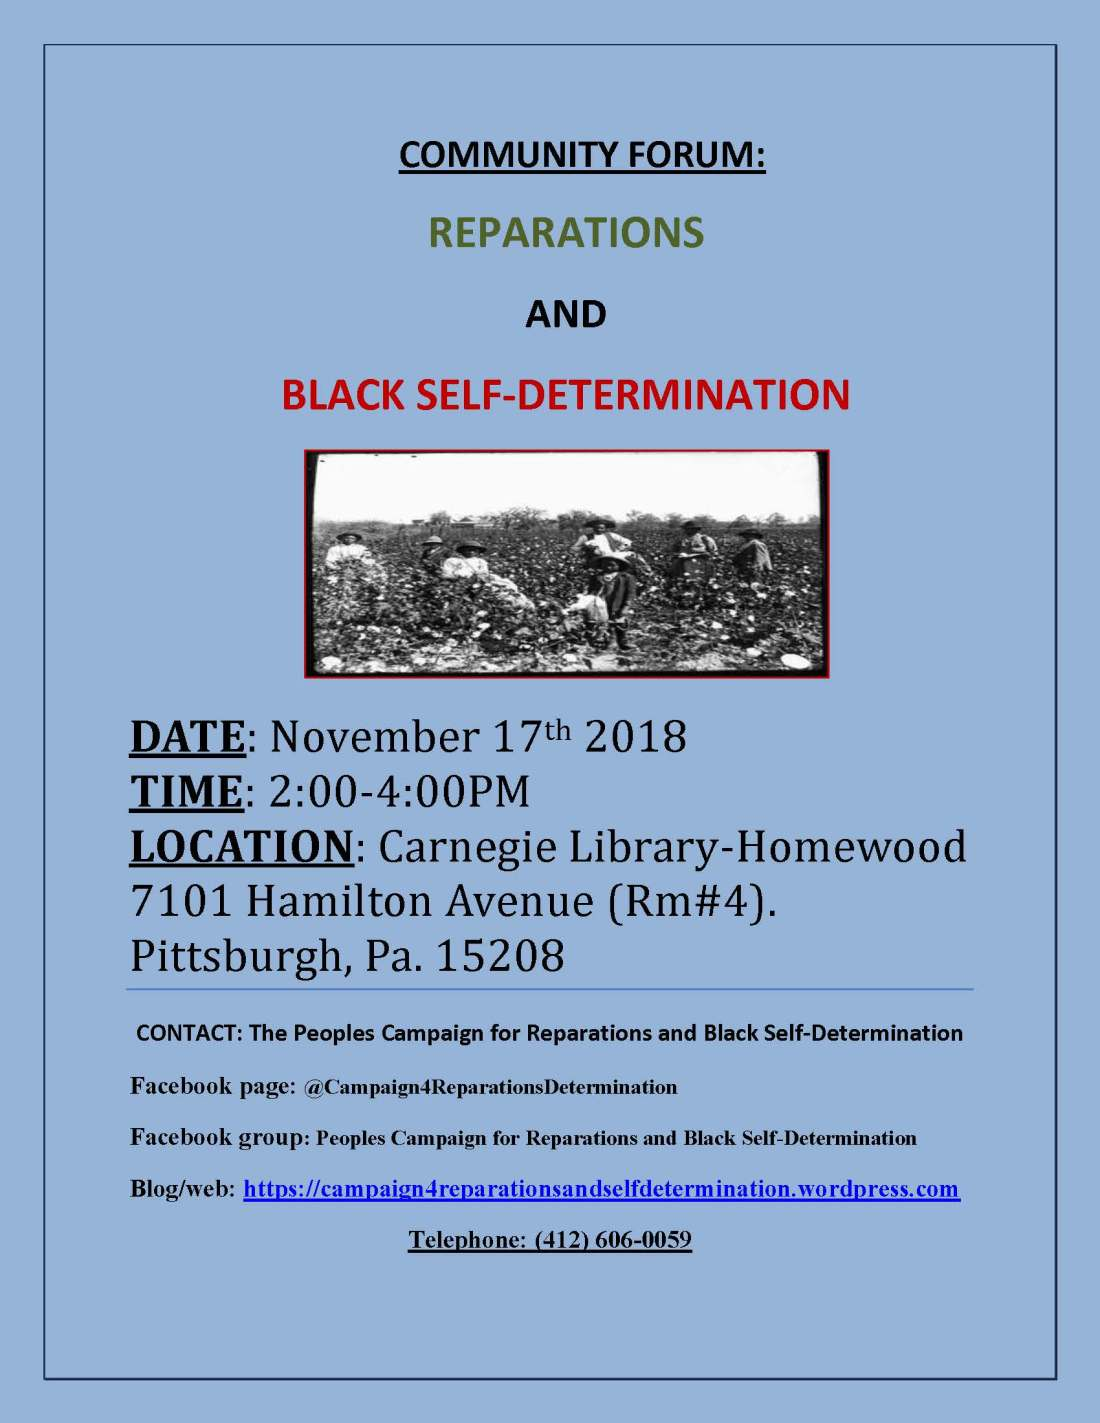 Campaign for Reparations and Self-Determination meeting flyer, 11-17-18